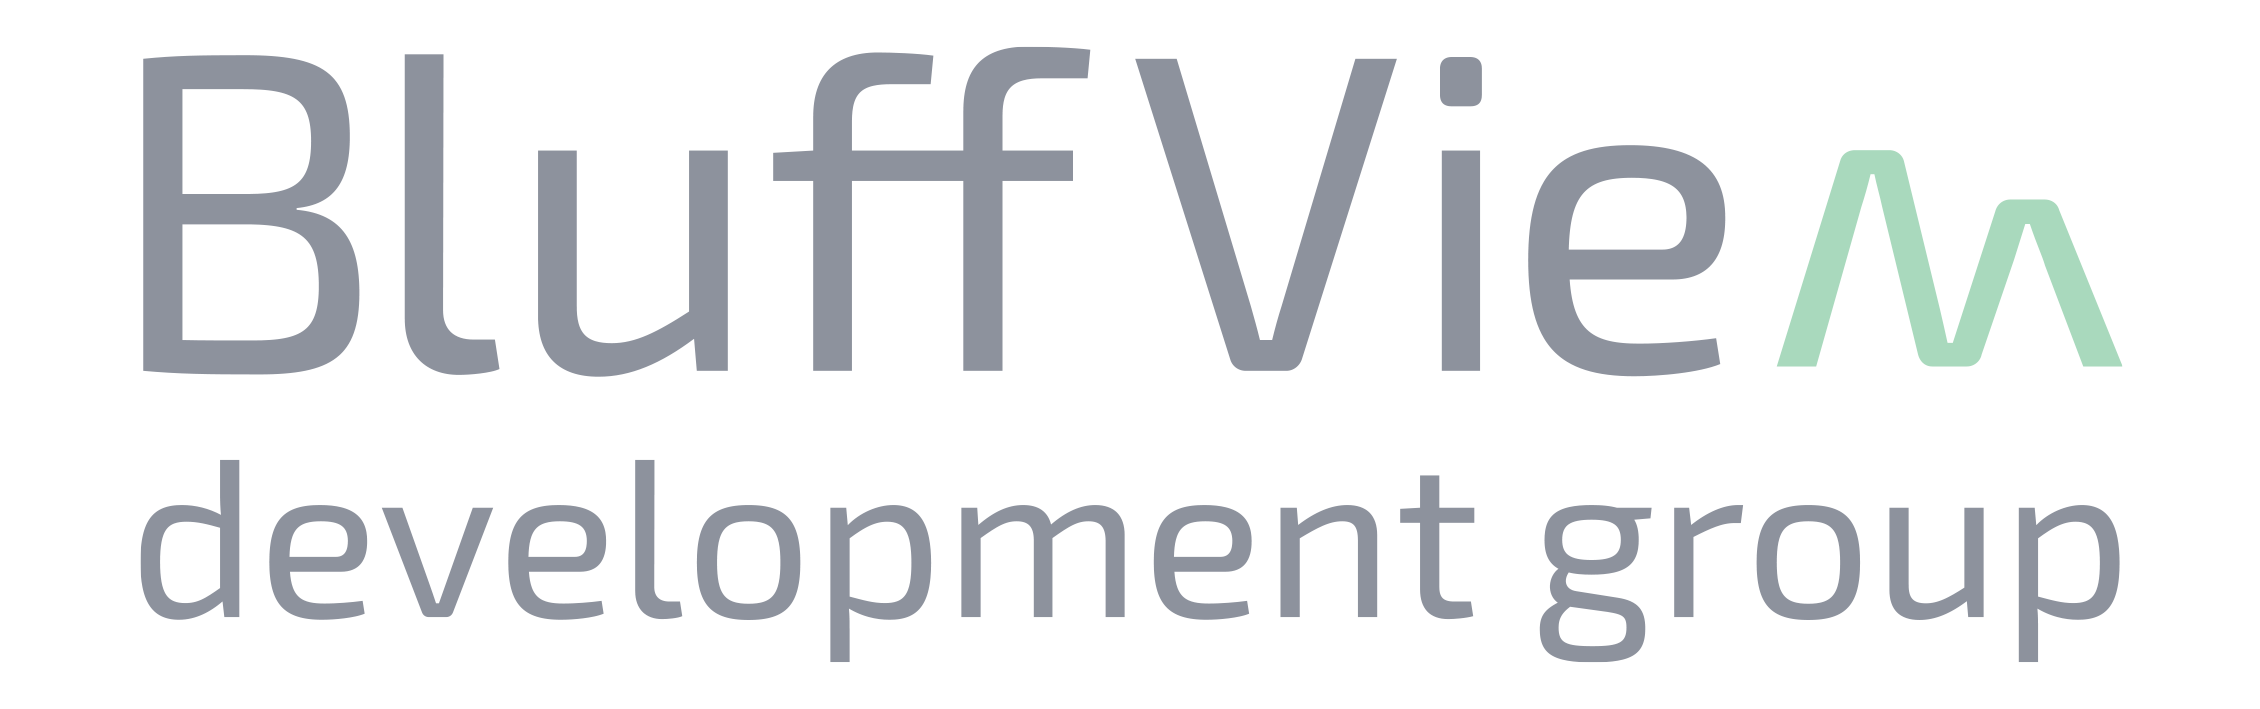 Bluffview Development Group